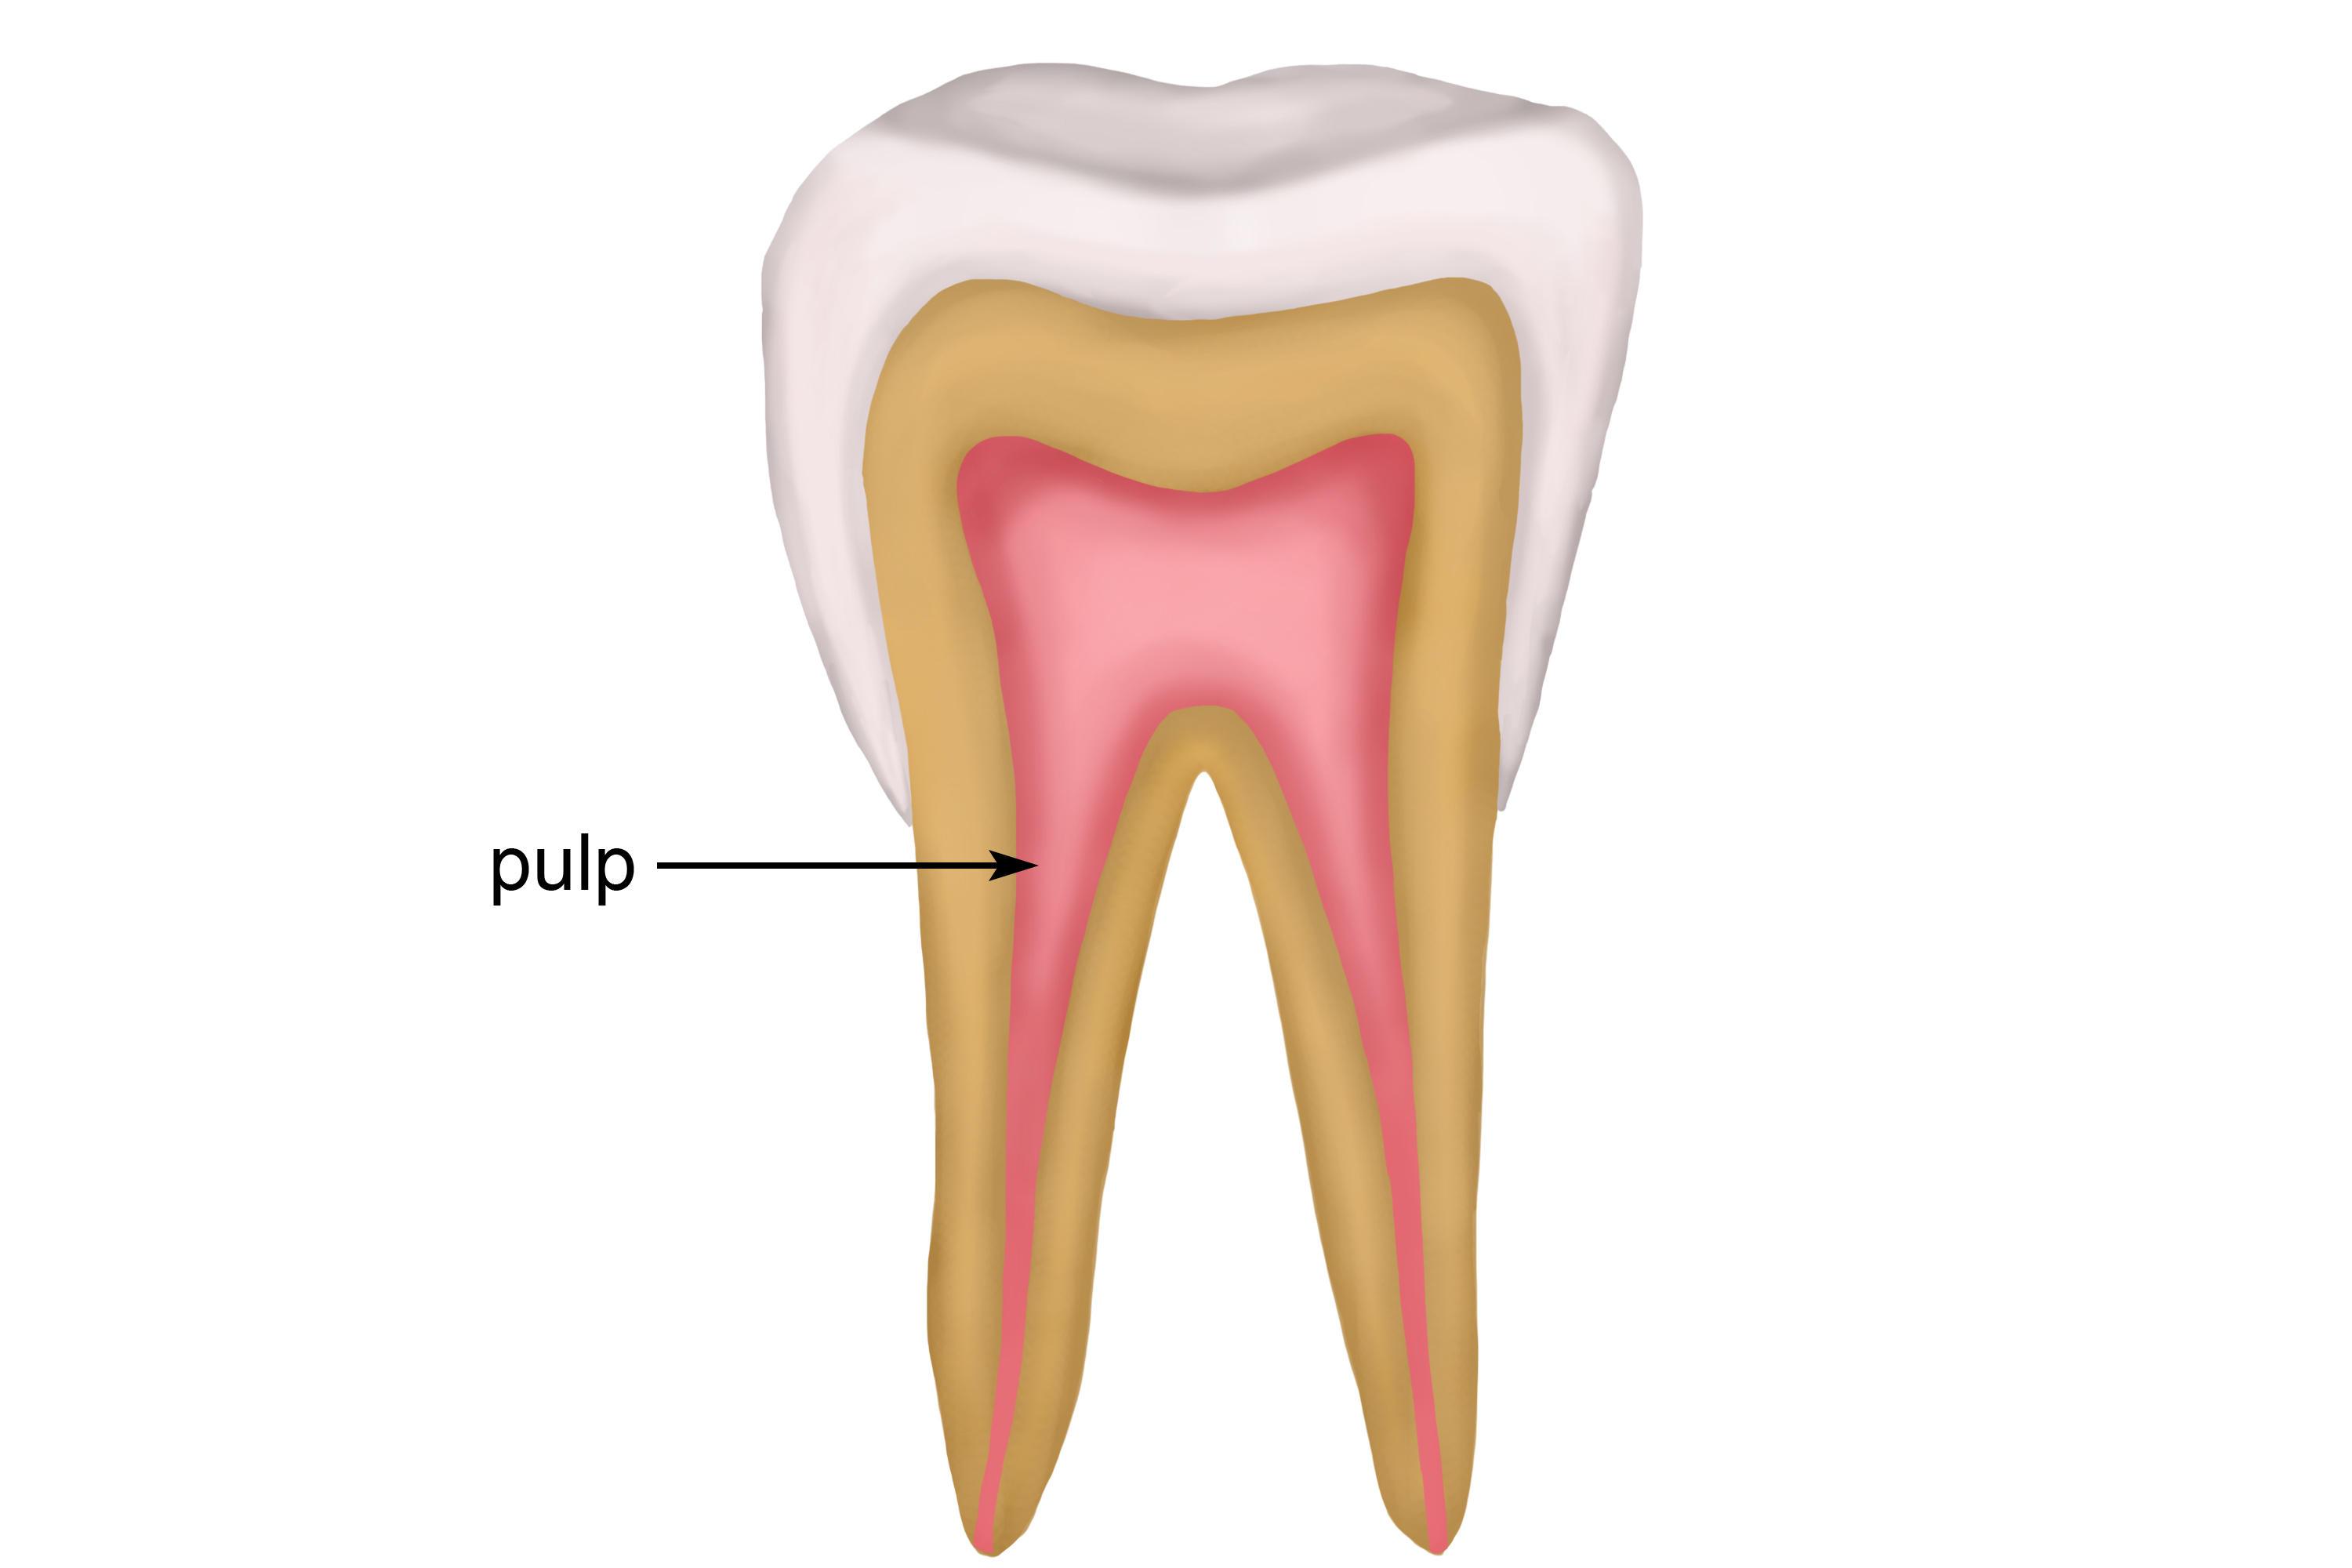 Pulp is a living tissue inside the dentine that is connected to the blood stream and nerves